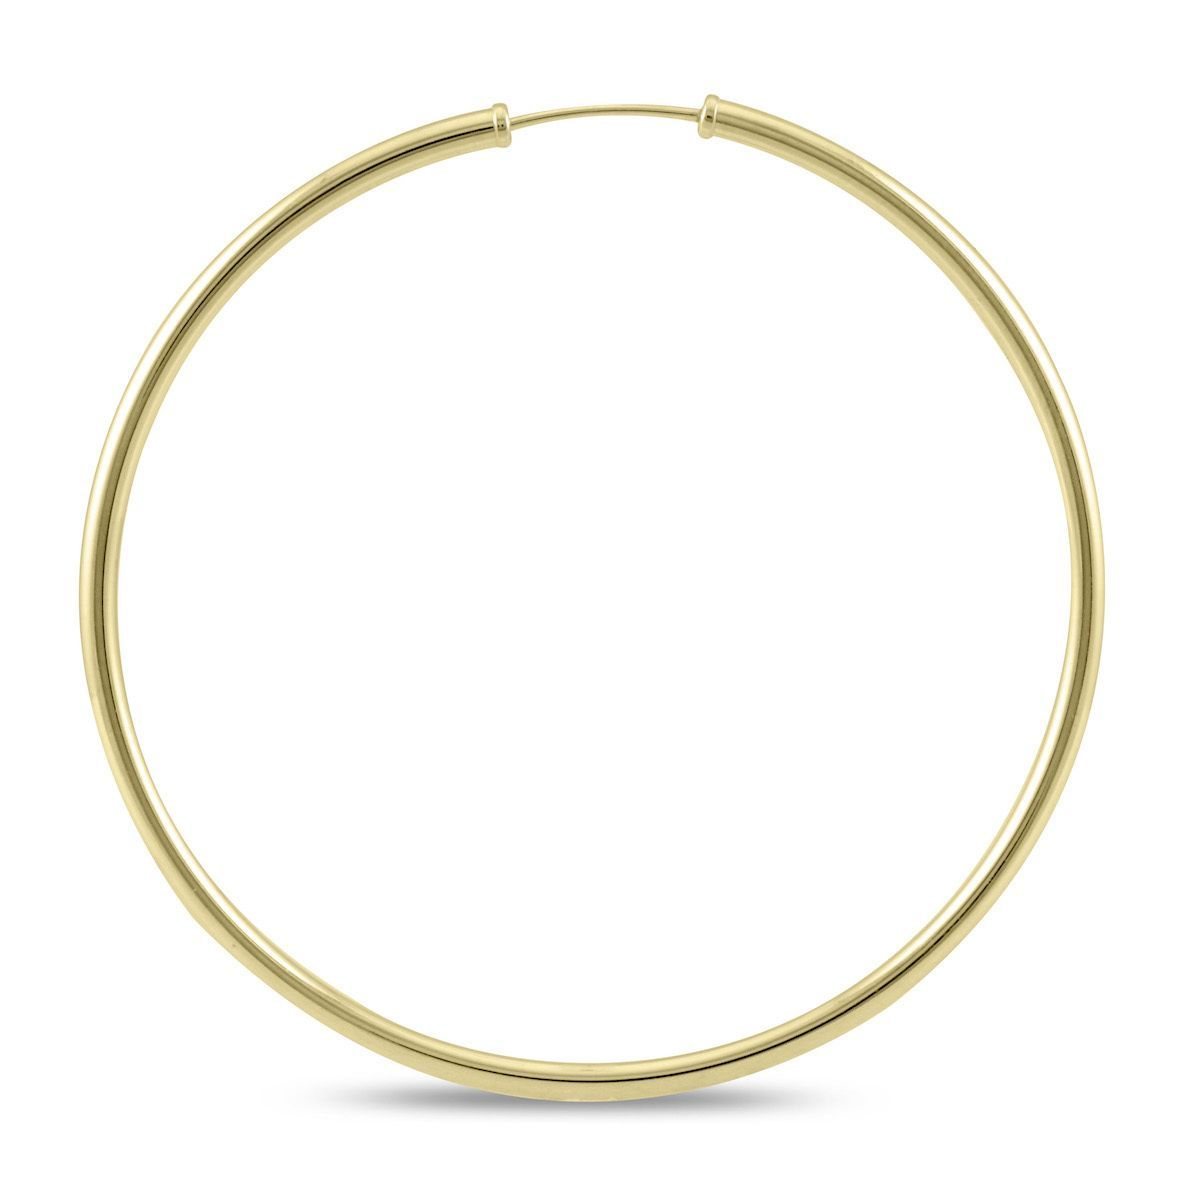 Marquee Jewels 14k Gold 50millimeter Endless Hoop Earrings